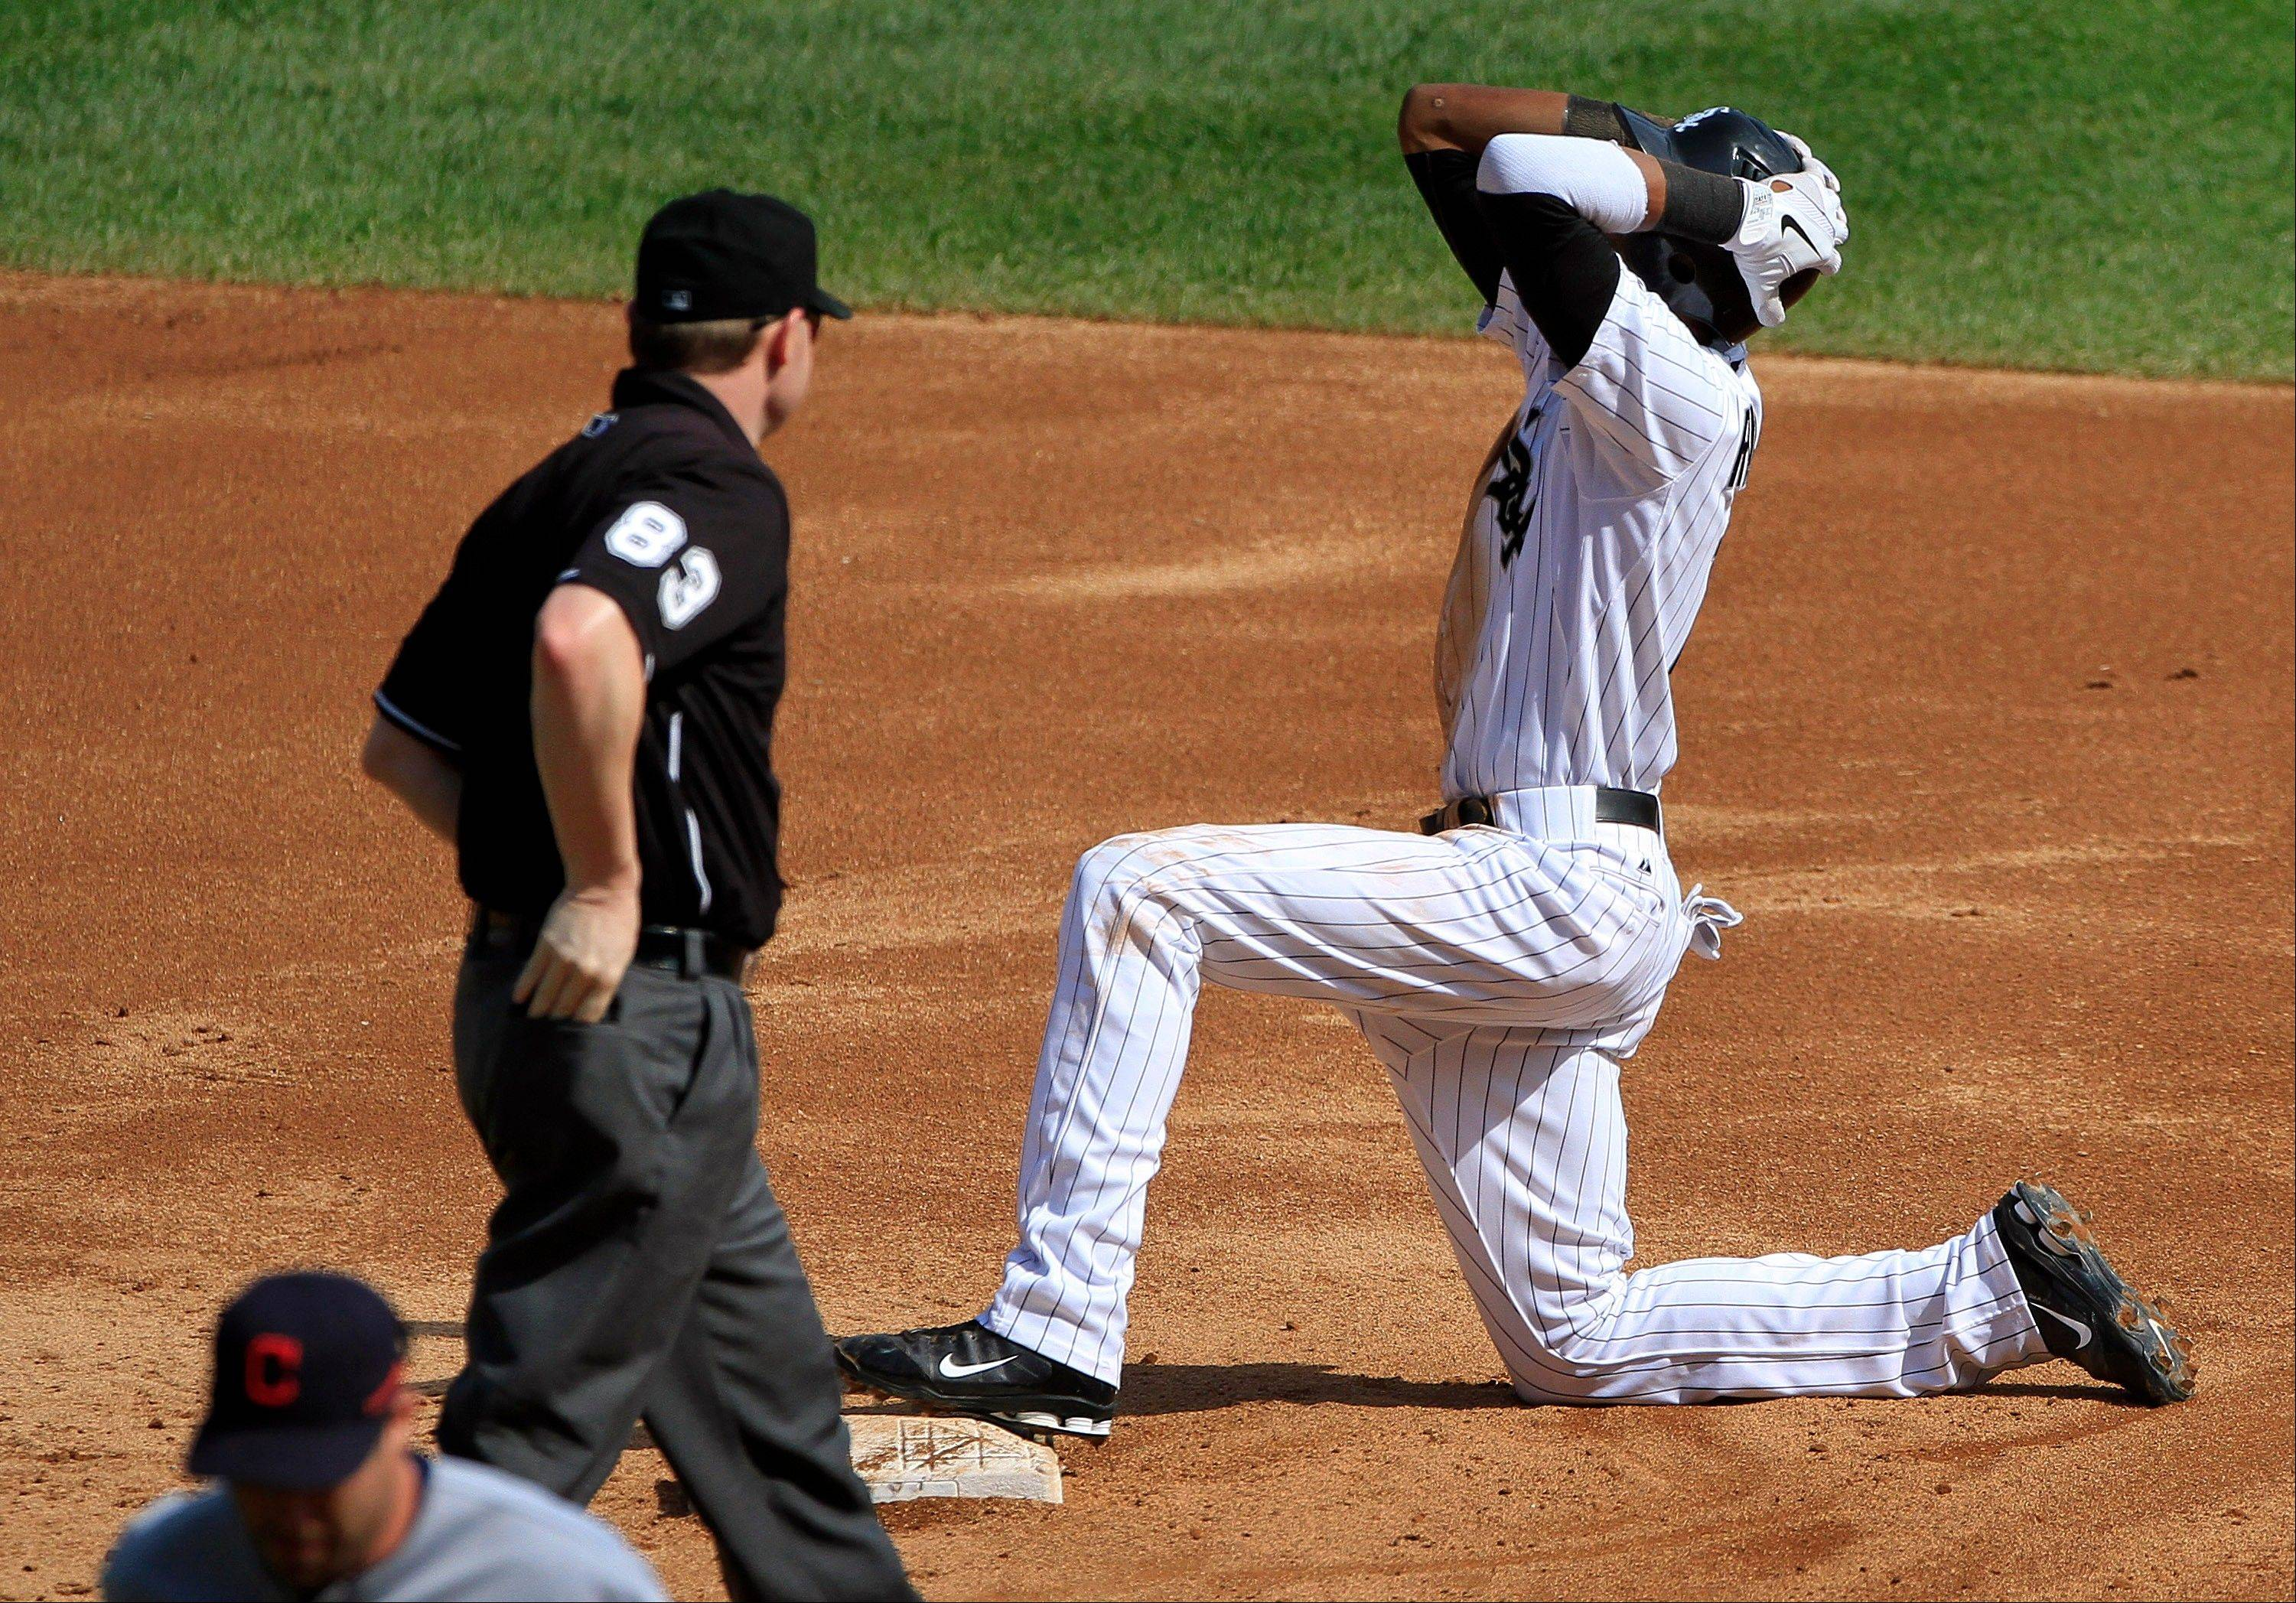 White Sox shortstop Alexei Ramirez reacts to being called out at stealing second base by umpire Mike Estabrook Tuesday during the third inning against the Cleveland Indians.